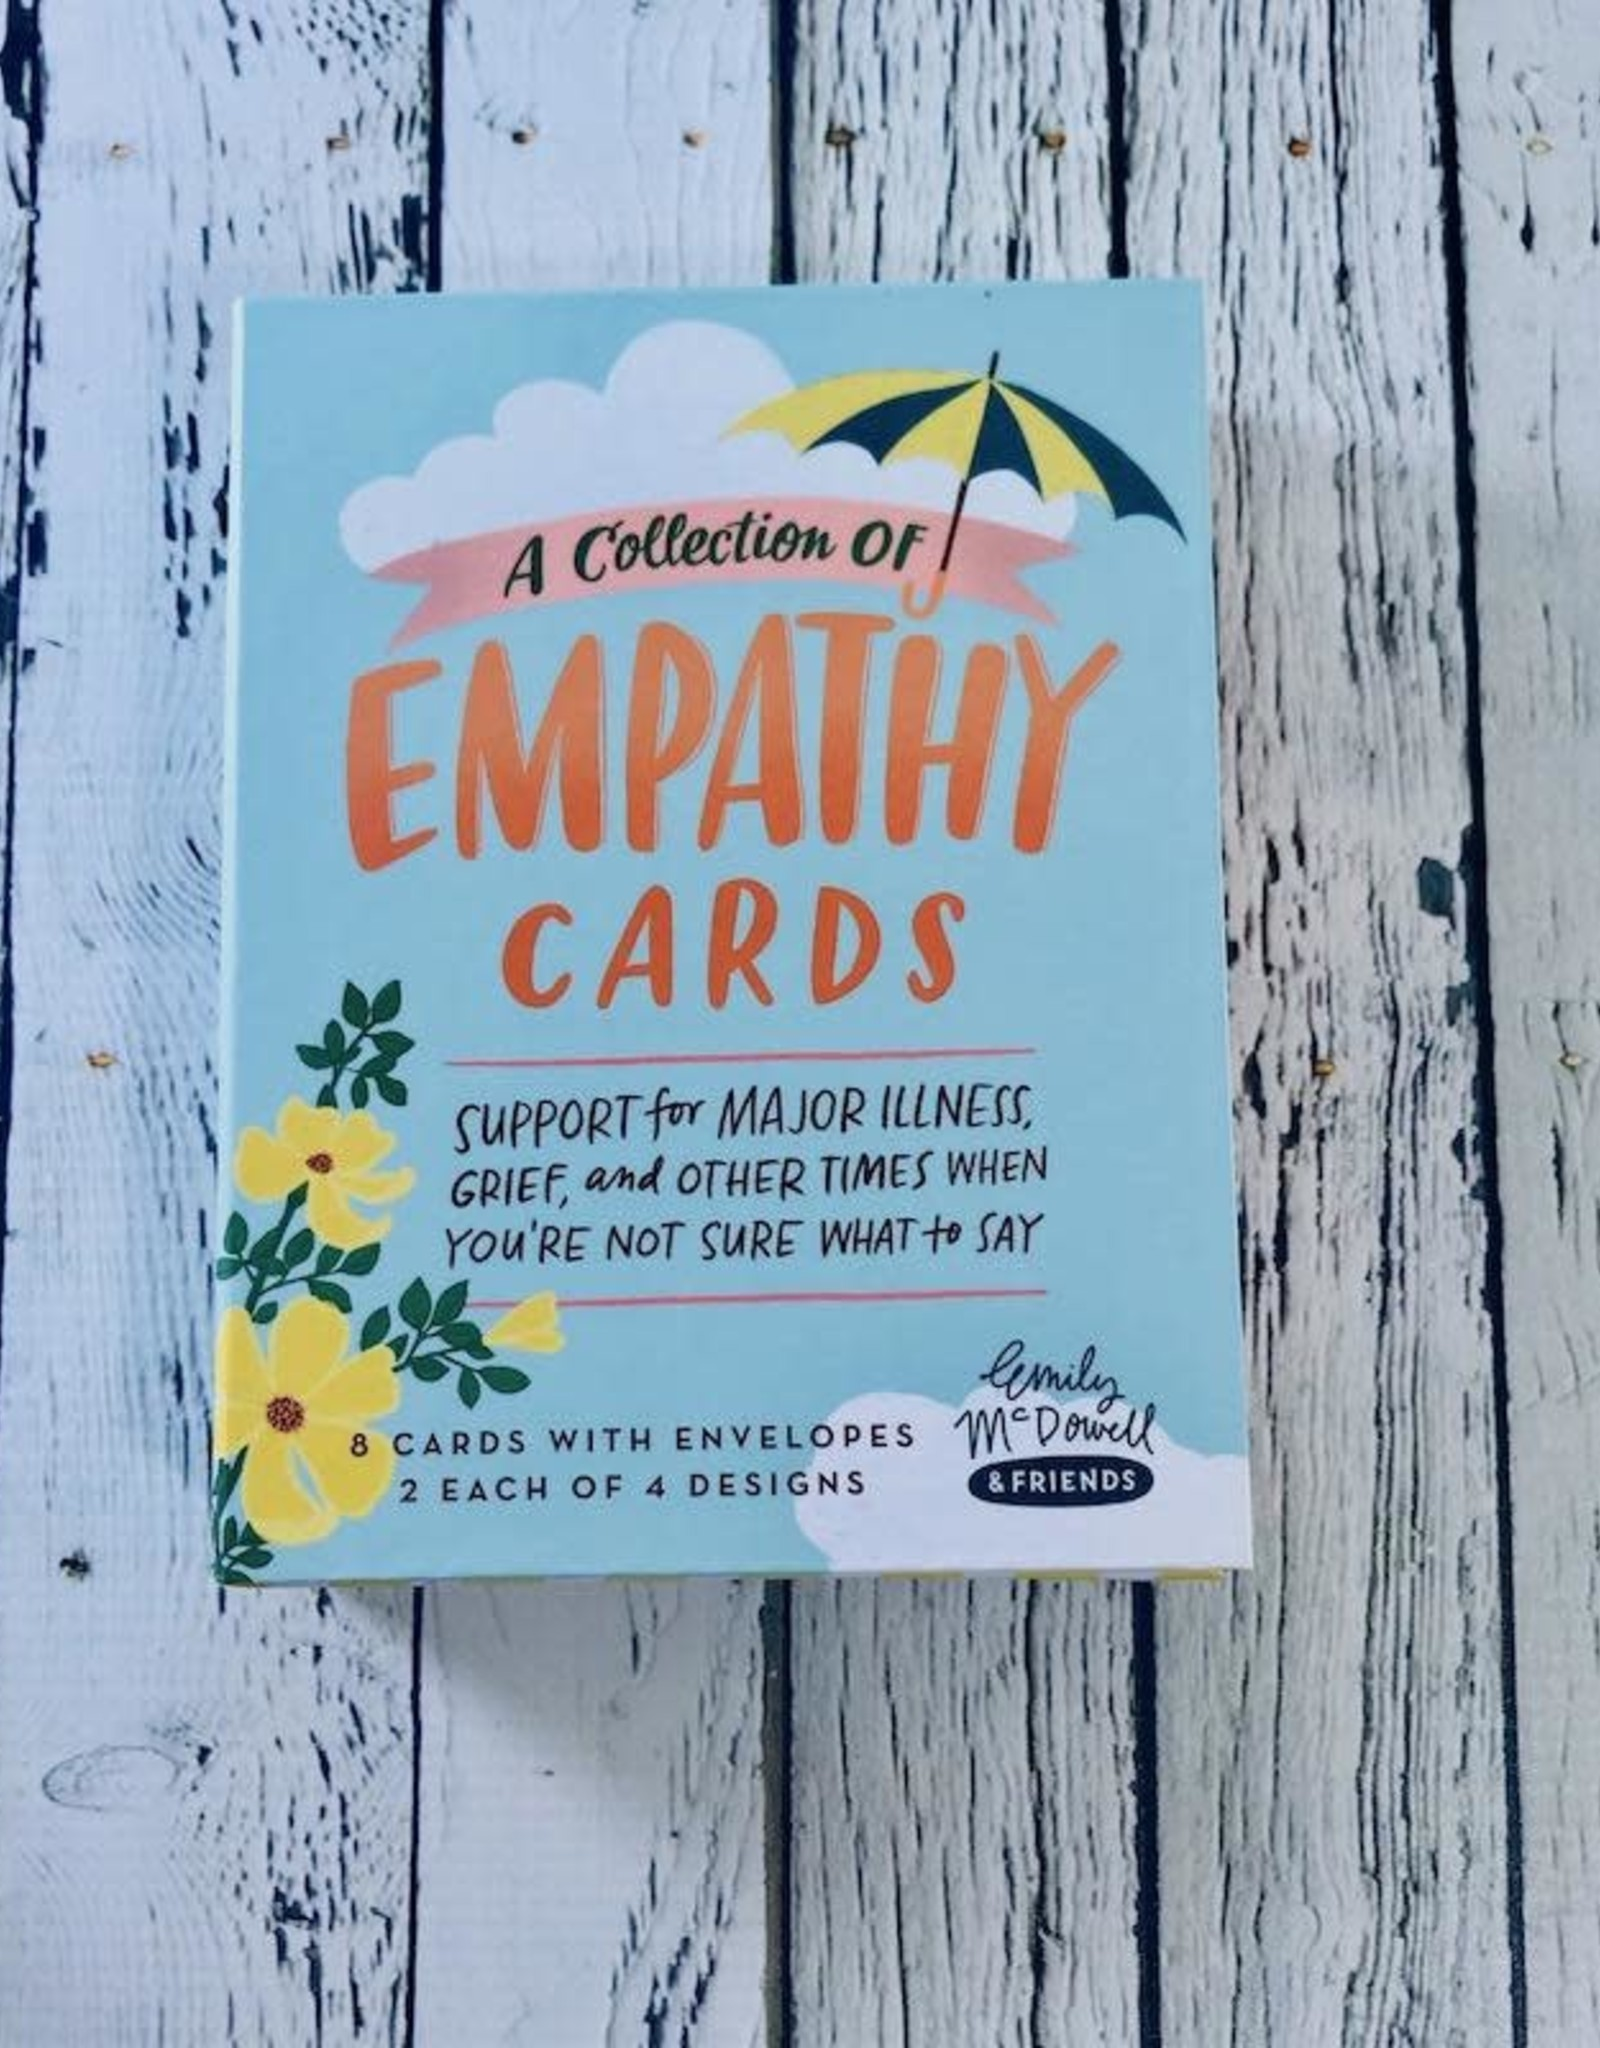 emily mcdowell A Collection of Empathy Cards